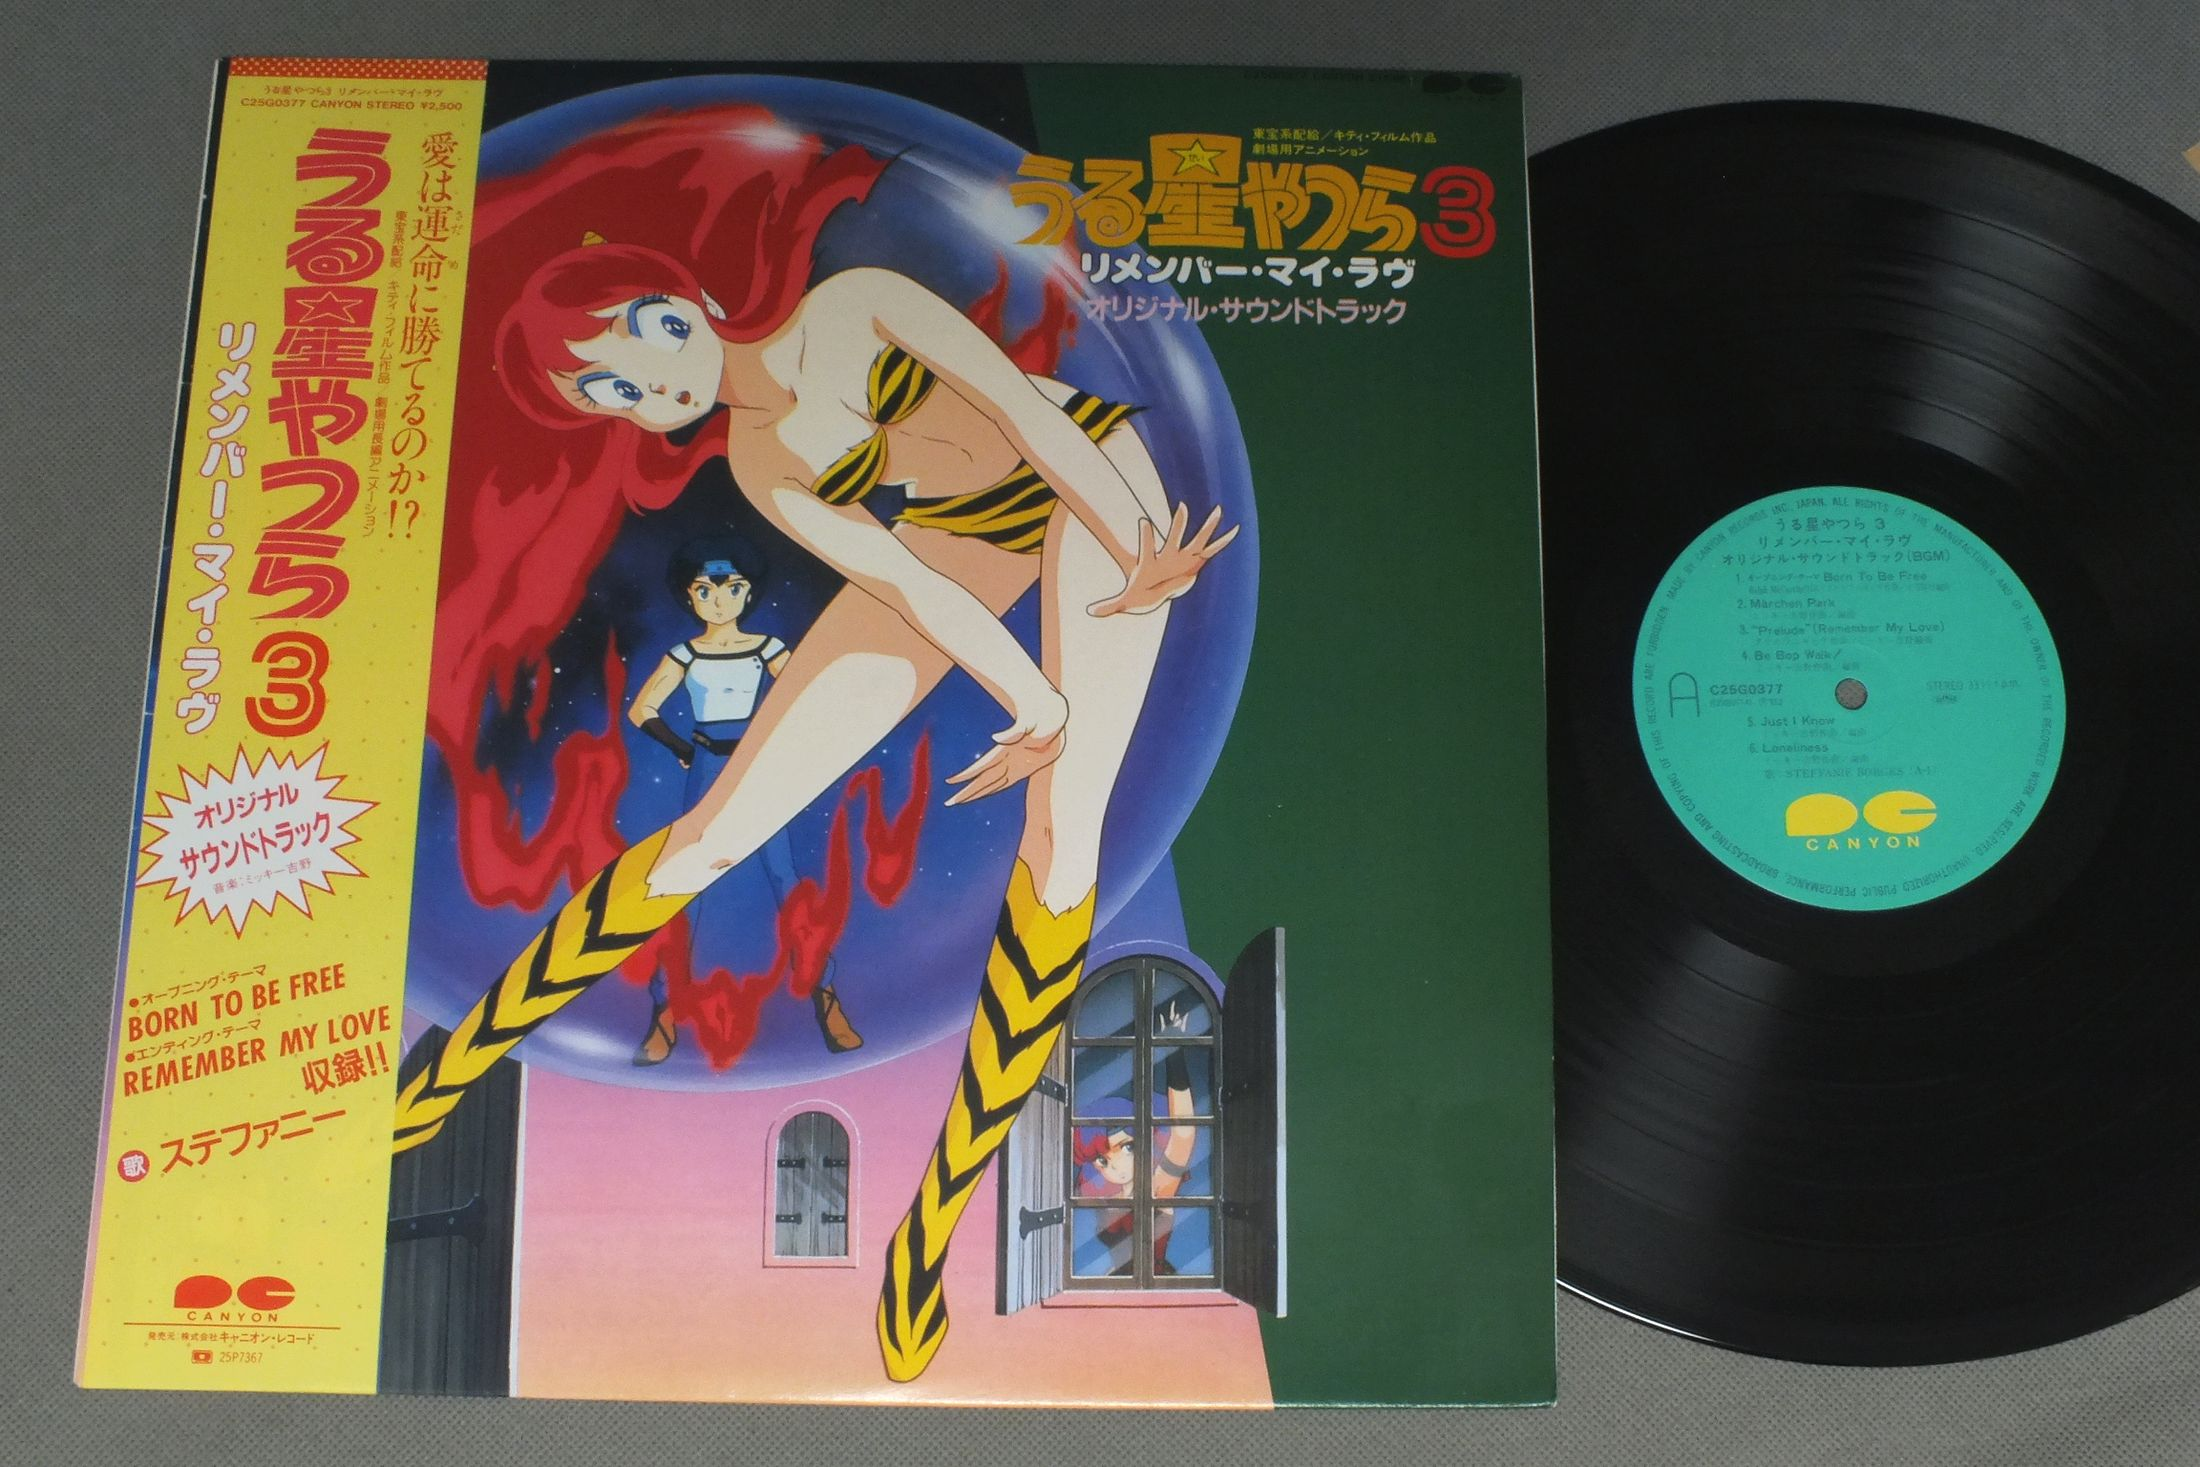 ANIME URUSEI YATSURA 3 - REMEMBER MY LOVE - 33T